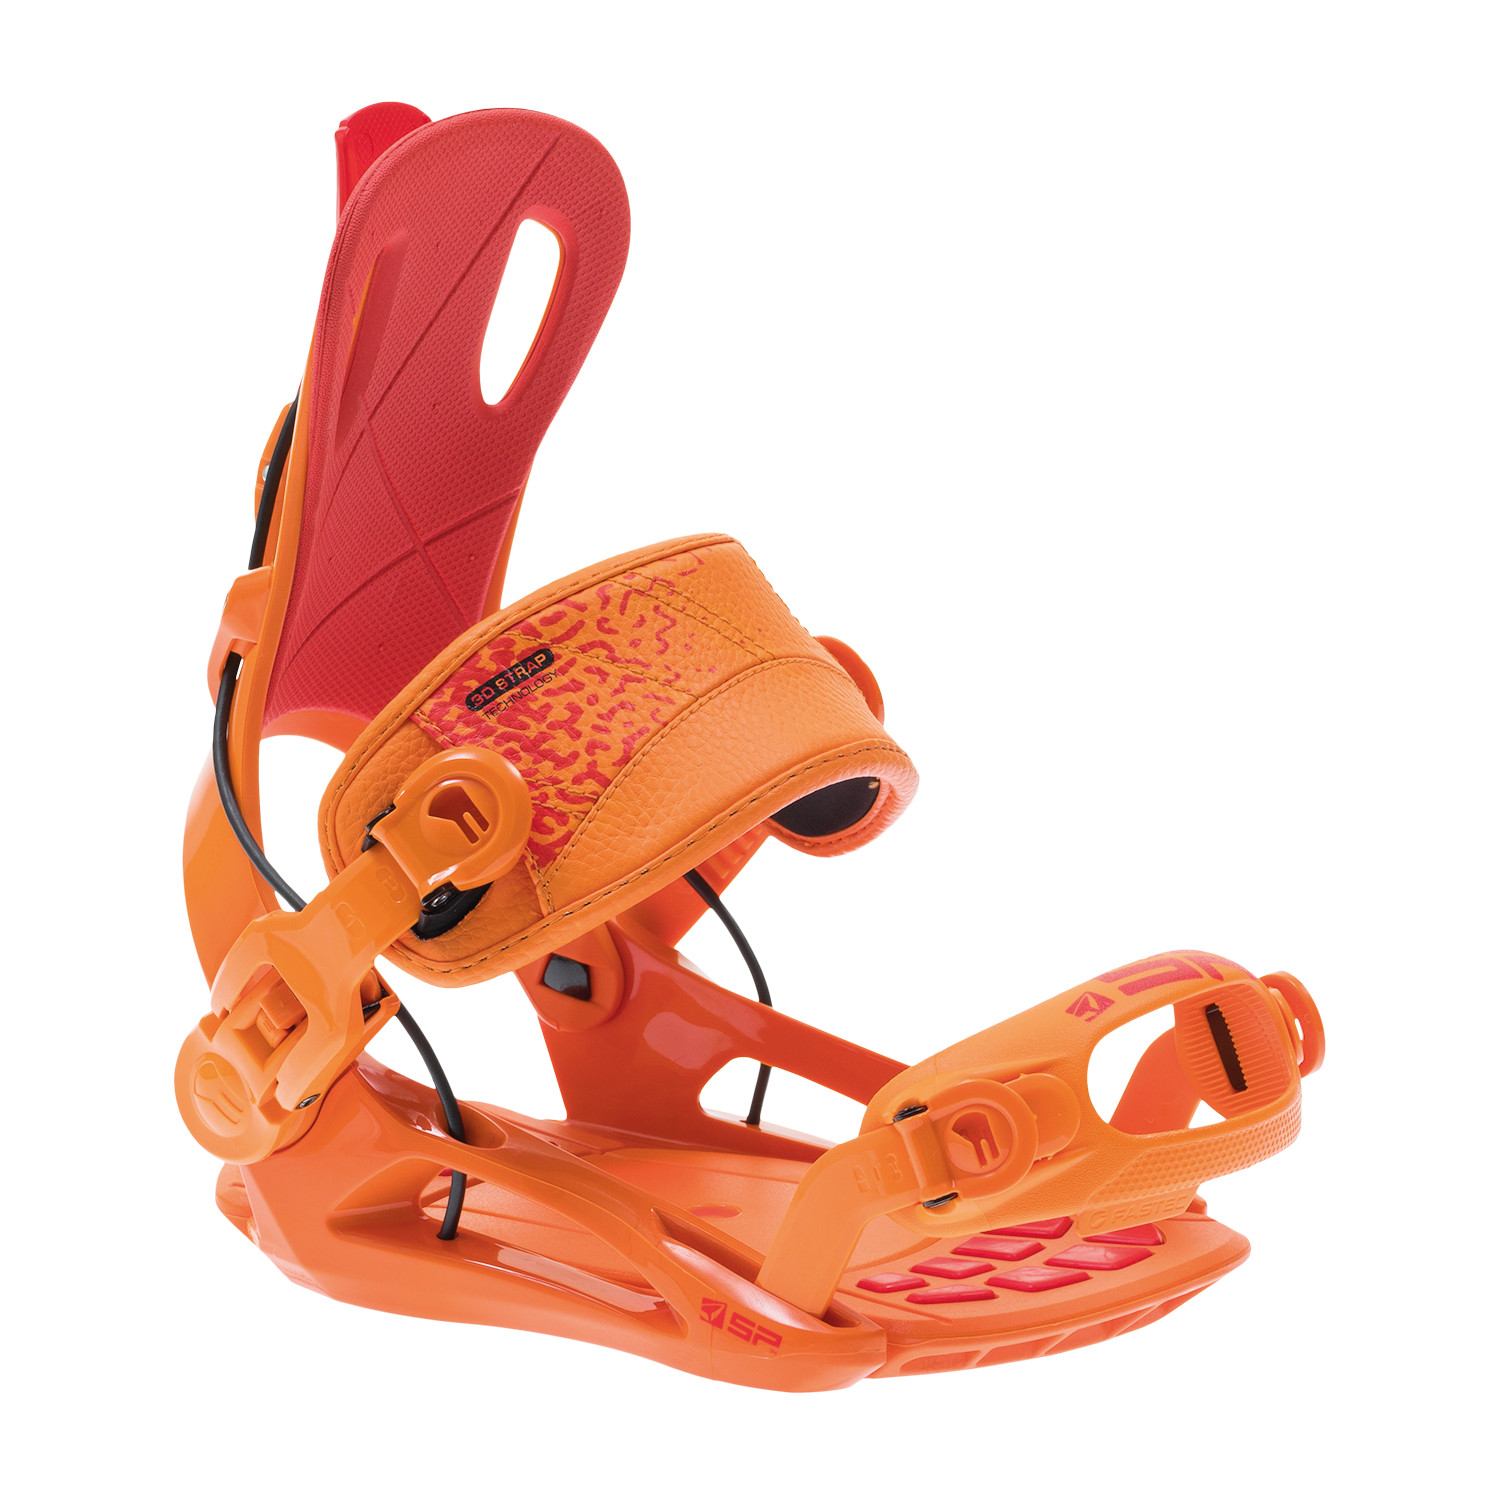 Legaturi Snowboard Rage Fastec FT270 M Orange/Red compatibile Burton Channel / Canal